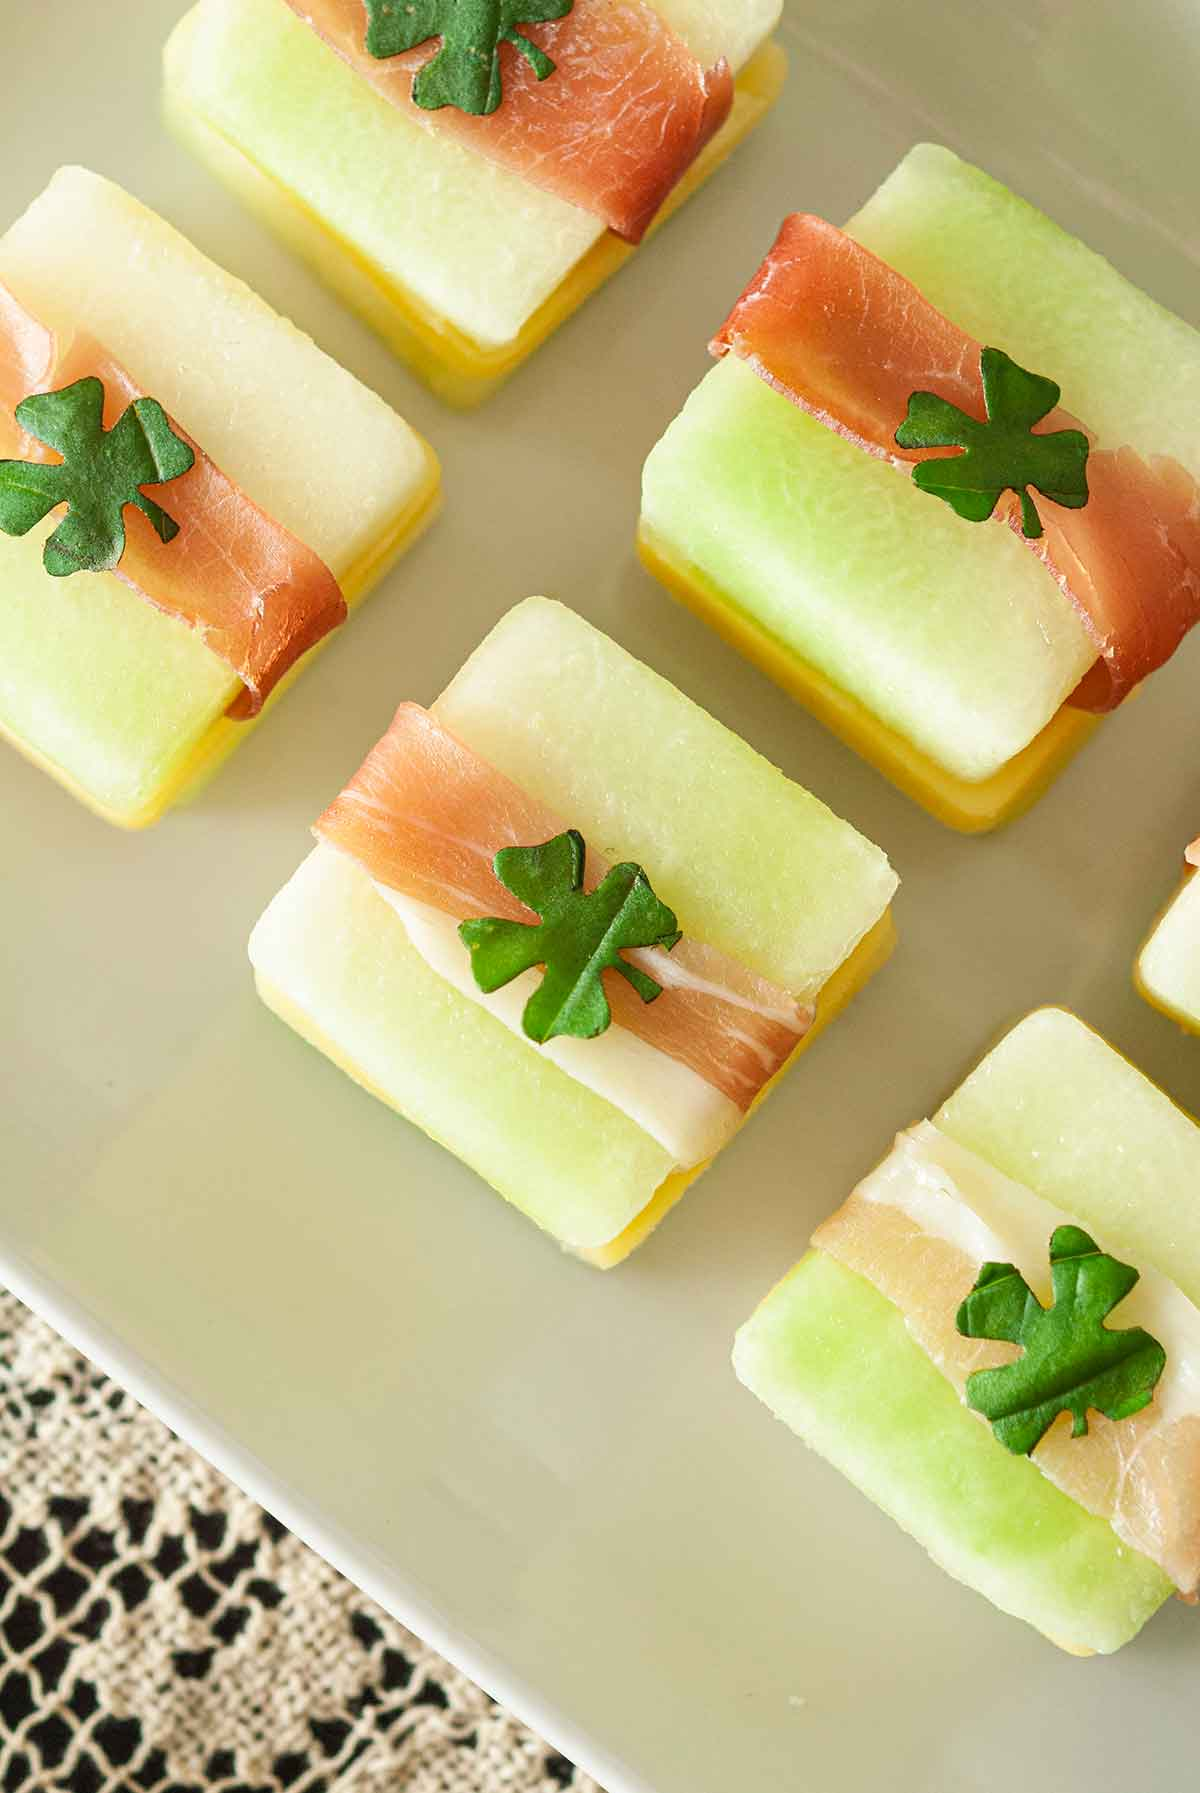 5 St. Patrick's Day melon appetizers with clovers on top, on a white plate.